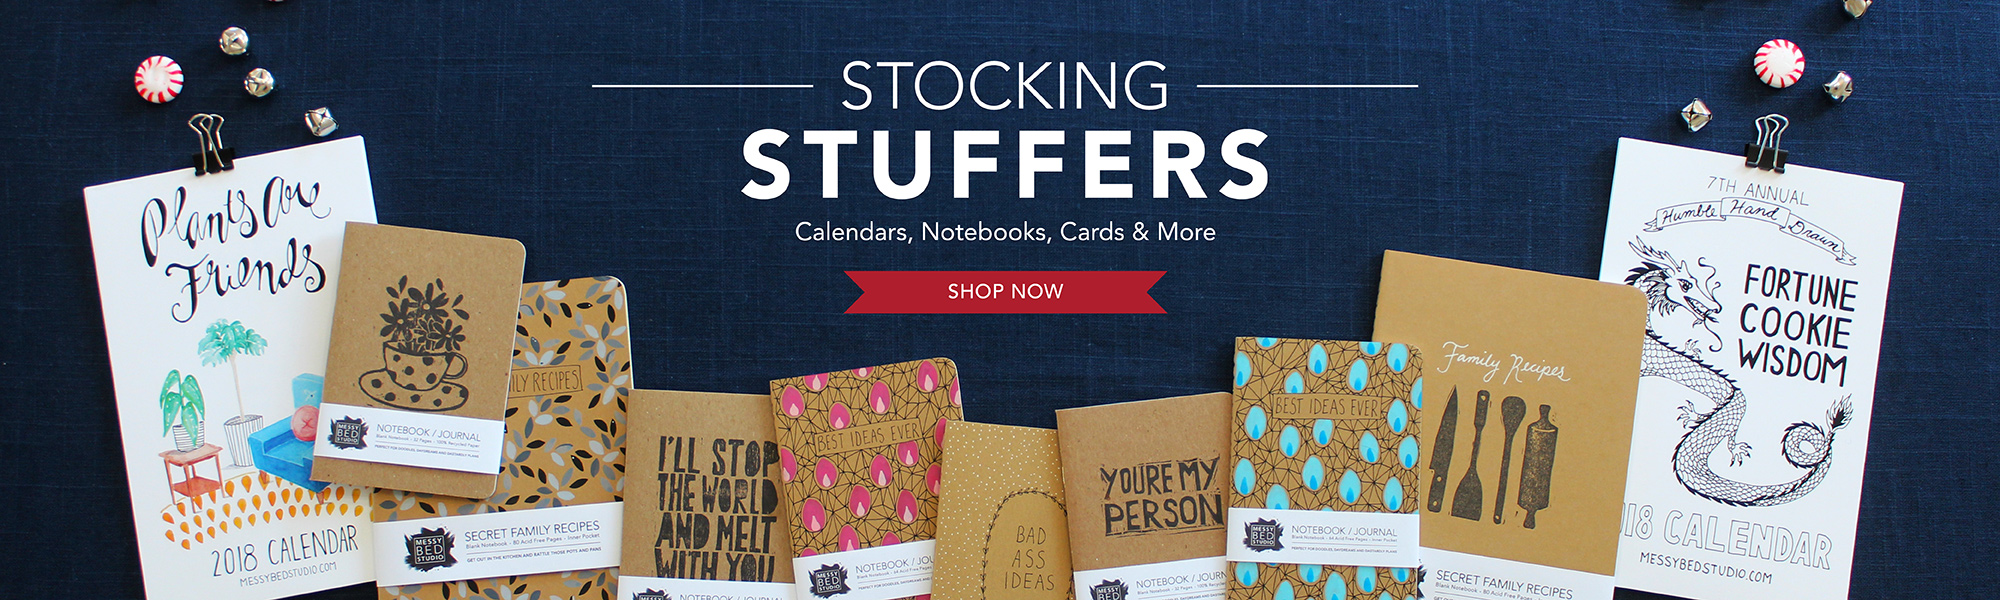 Stocking Stuffers, Calendars, Notebooks, Cards, Shop Now at Messy Bed Studio